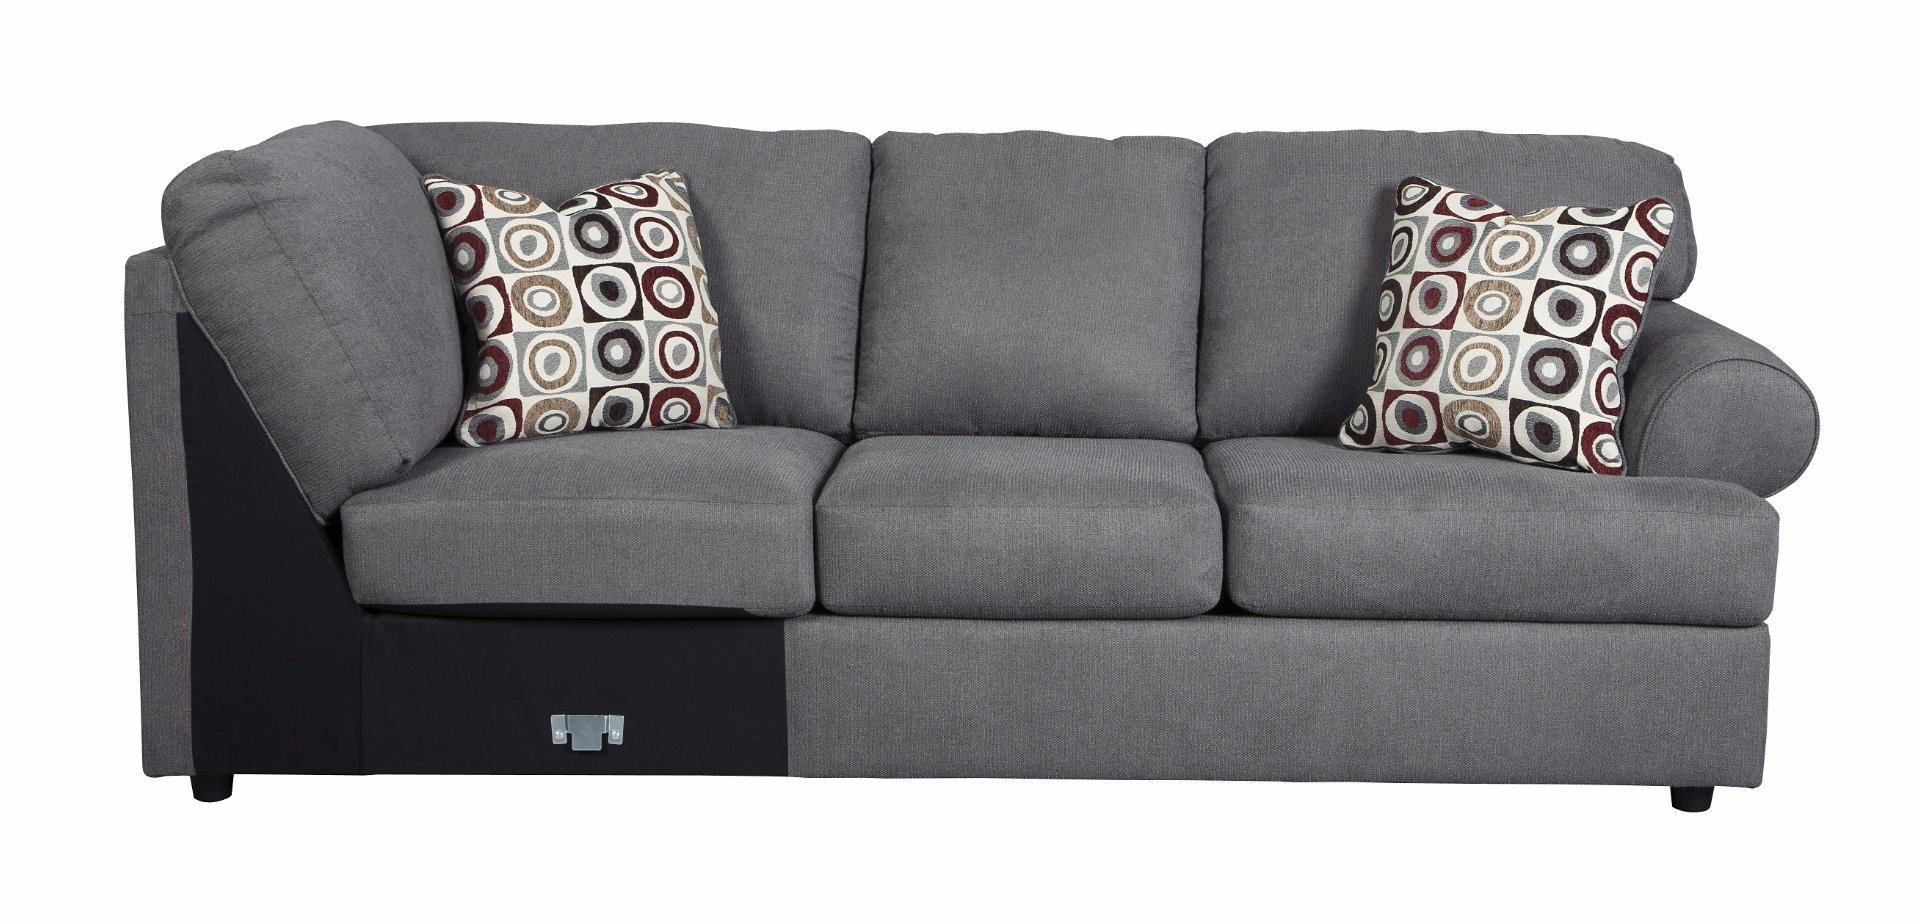 Ashley Furniture Signature Design - Jayceon Right Arm Facing Sofa - Contemporary Style Sectional - Gray